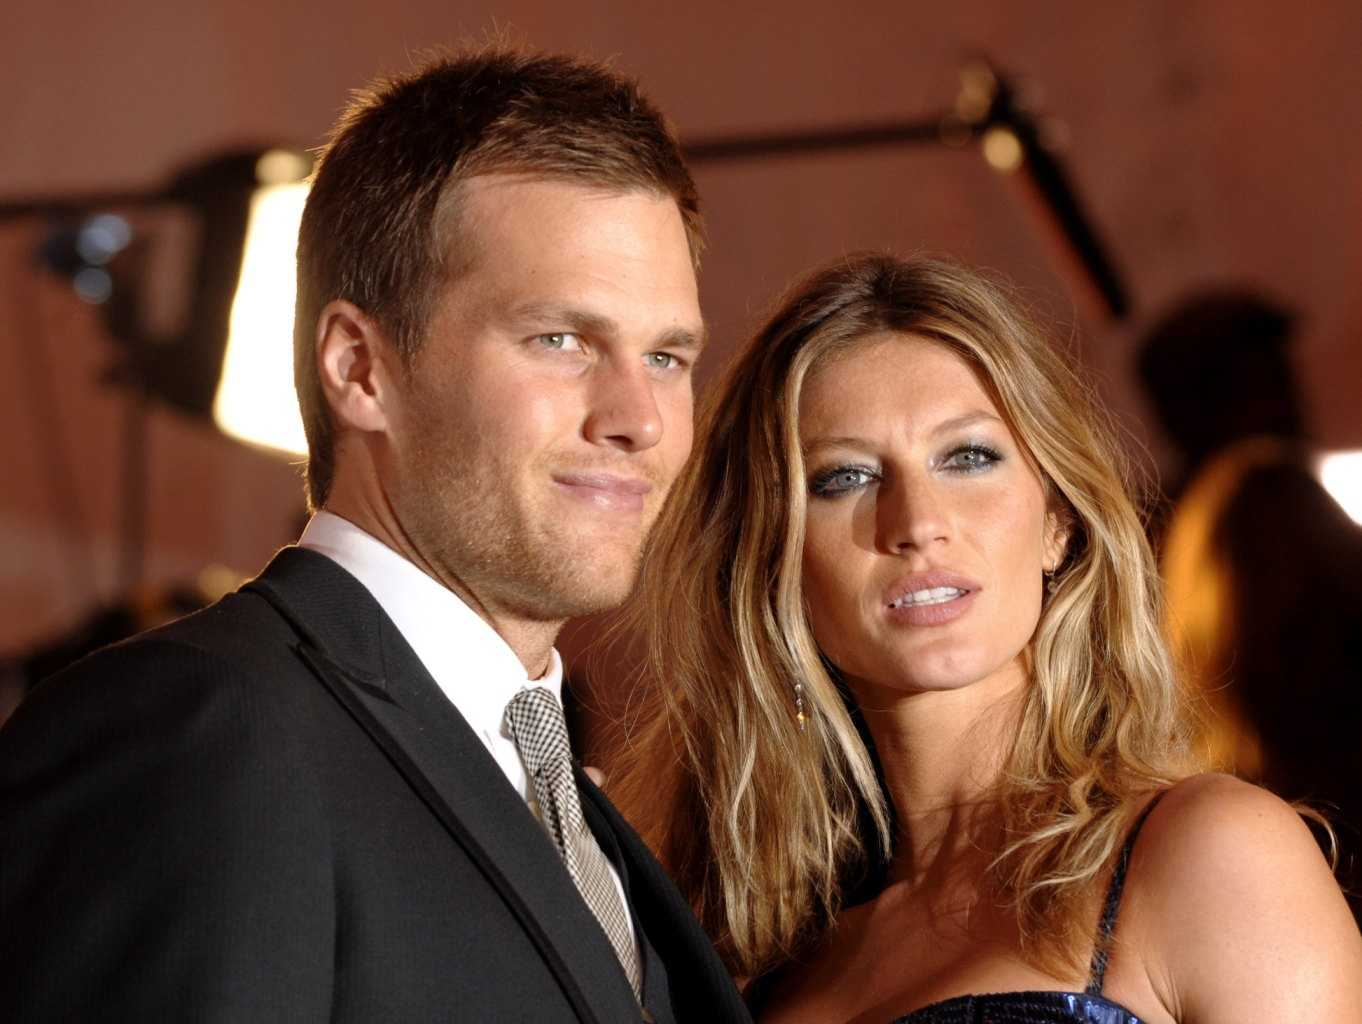 Tom Brady doesn't deny Gisele's concussion comments